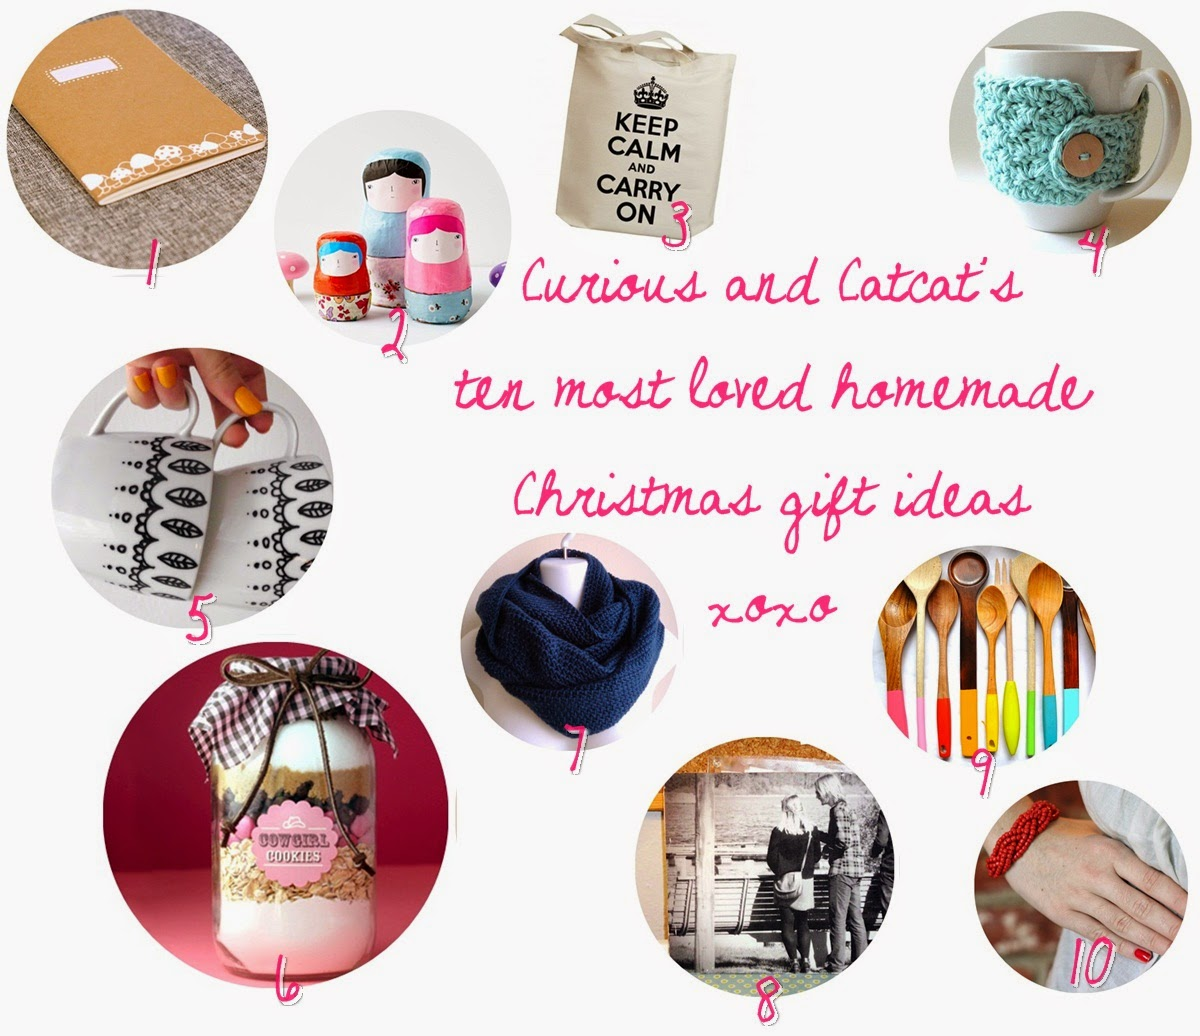 Curious and Catcat: 10 Favorite Homemade Christmas Gifts